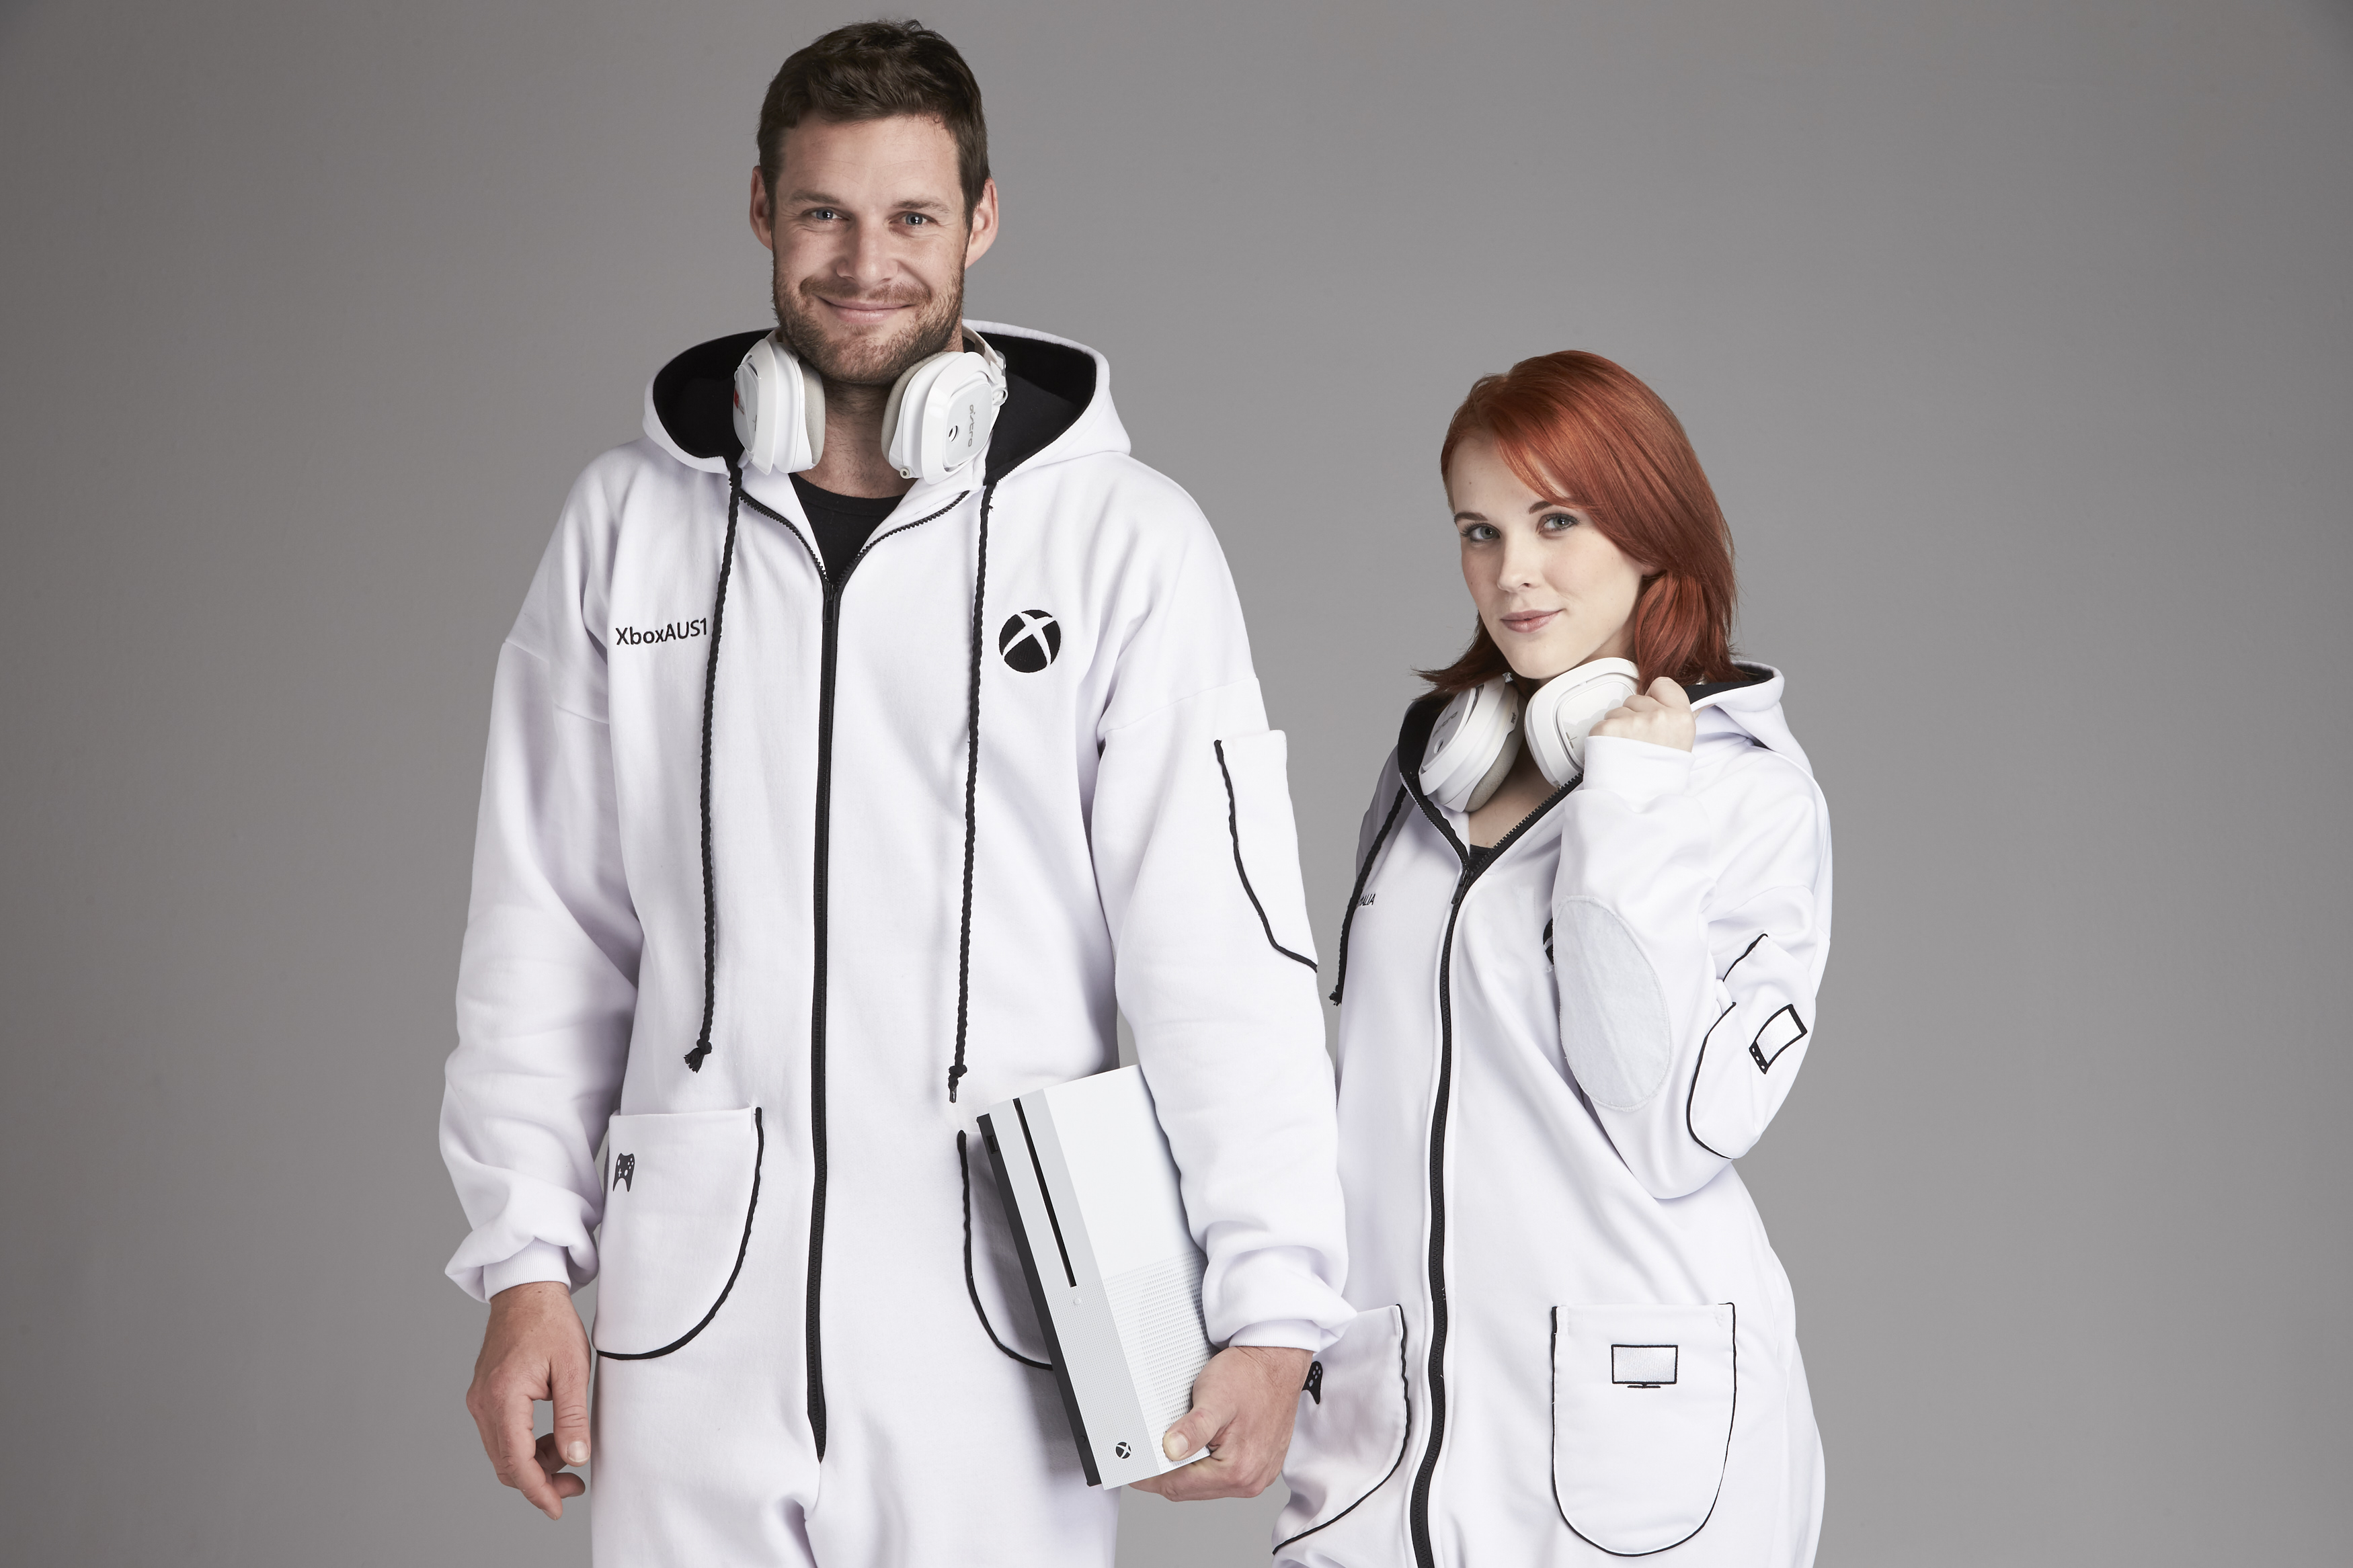 The team at Xbox Australia has now turned its hand to the world of fashion design.